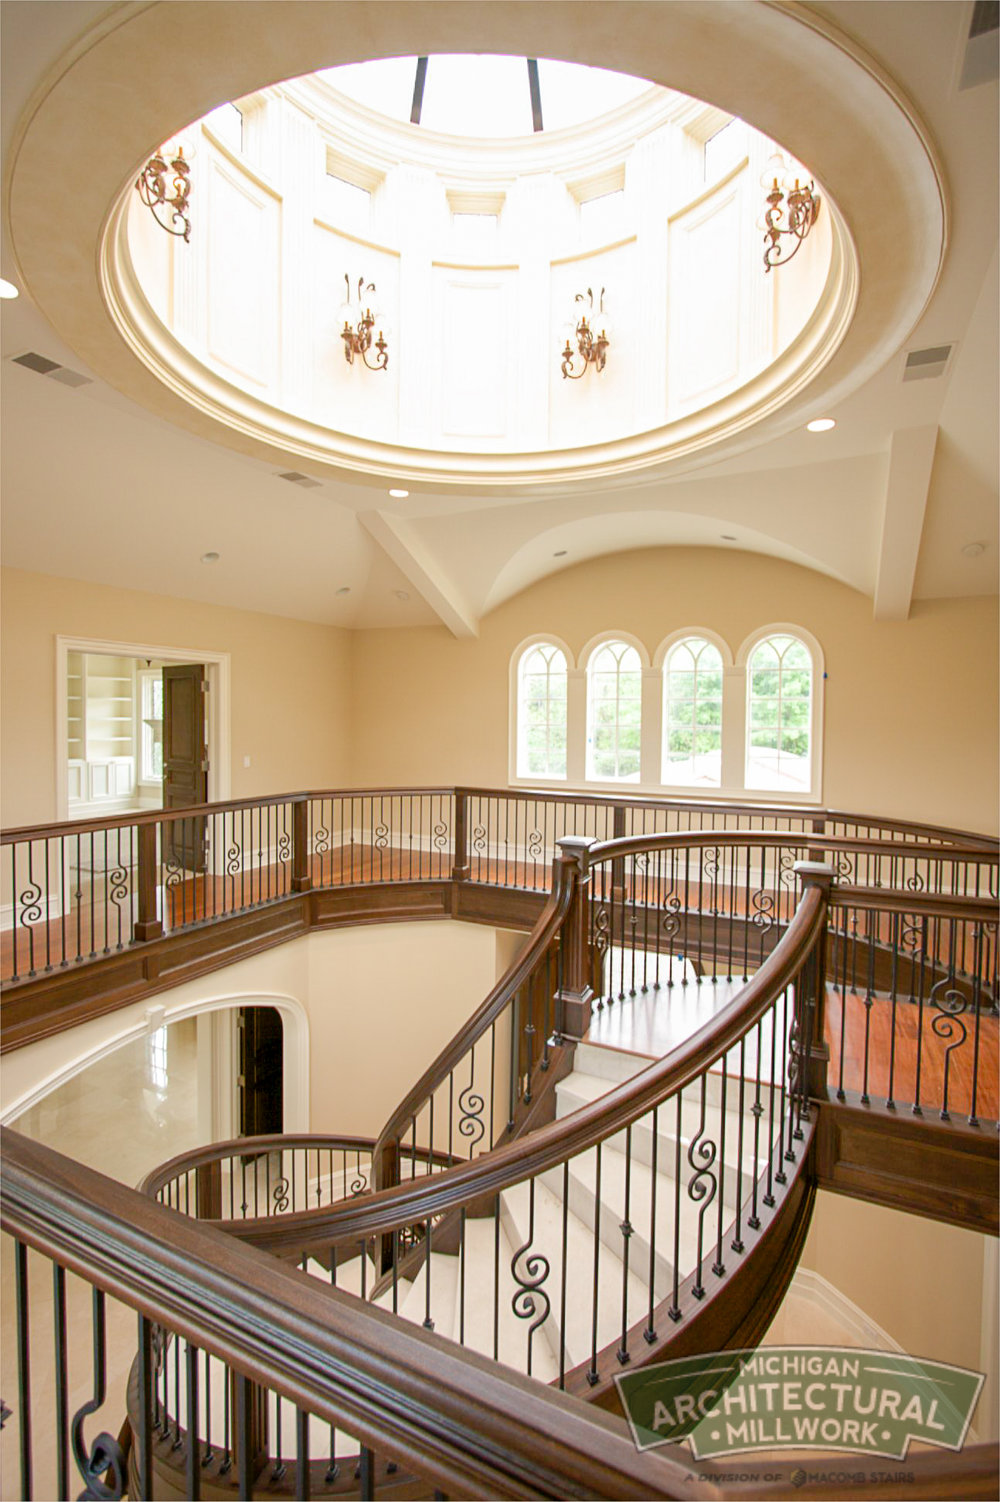 Michigan Architectural Millwork- Moulding and Millwork Photo-103.jpg